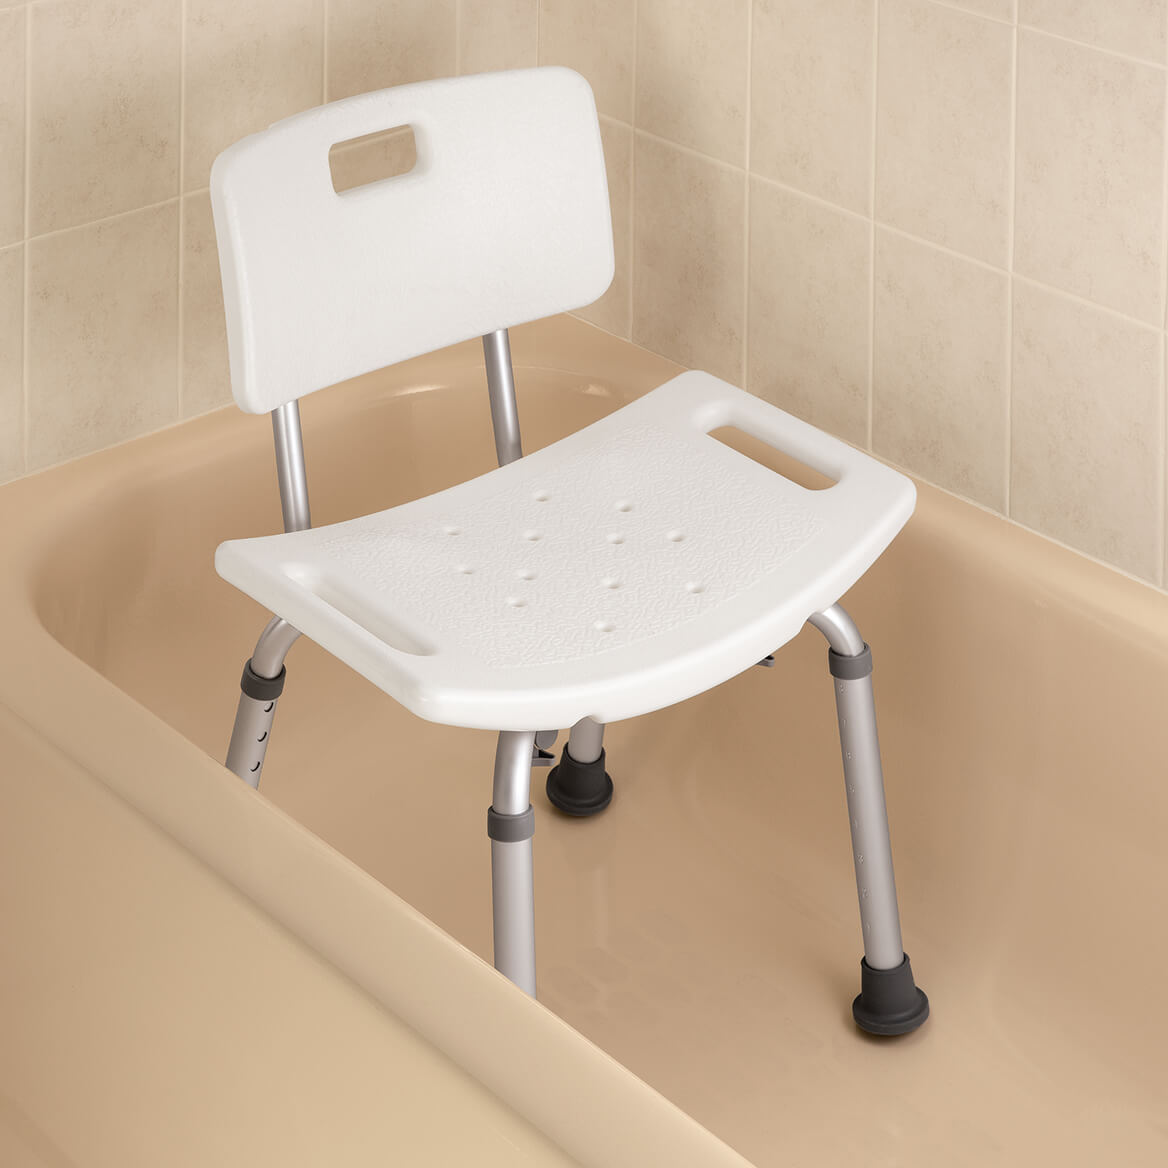 Bath Seat with Back-346181